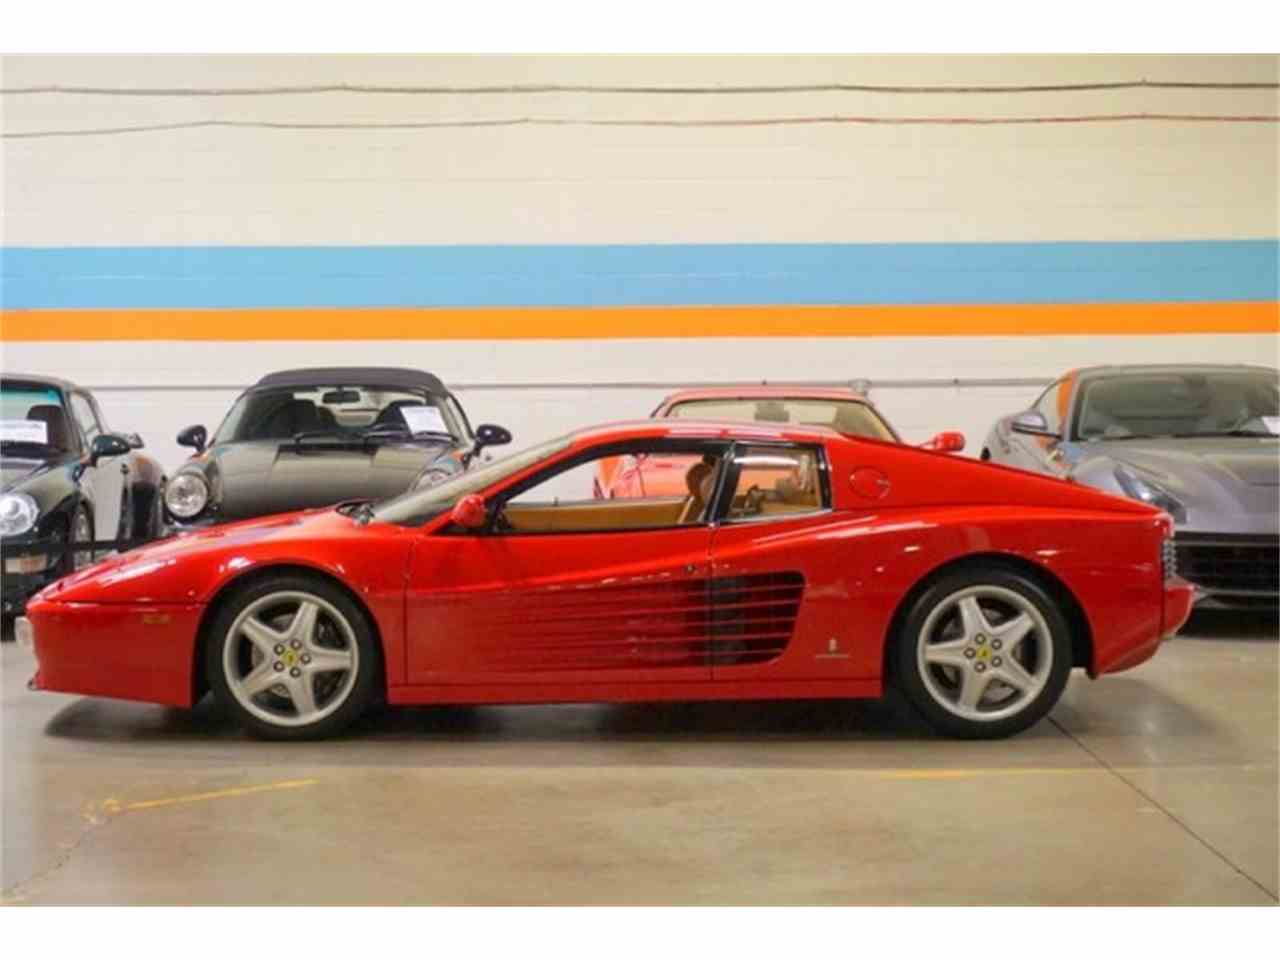 Large Picture of '92 Ferrari 512 TR located in Ohio Offered by R&H Motor Car Group - ETWG